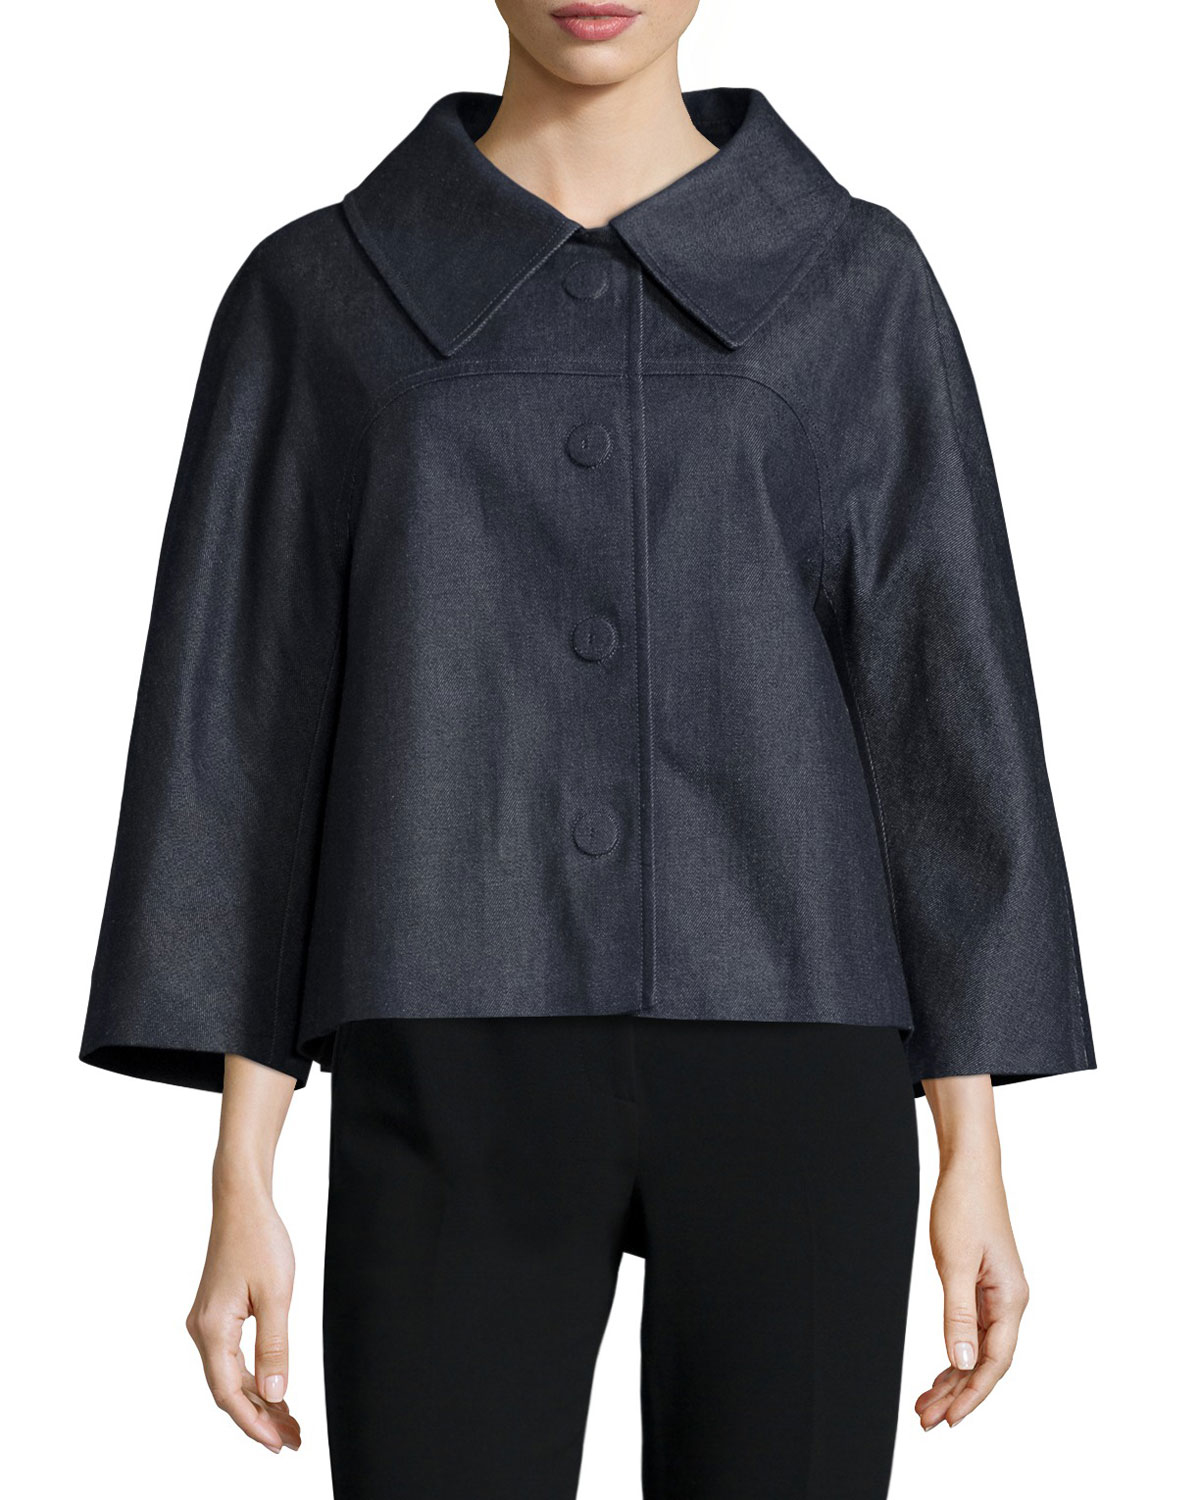 Michael kors 3/4-sleeve Short Boxy Jacket in Blue | Lyst